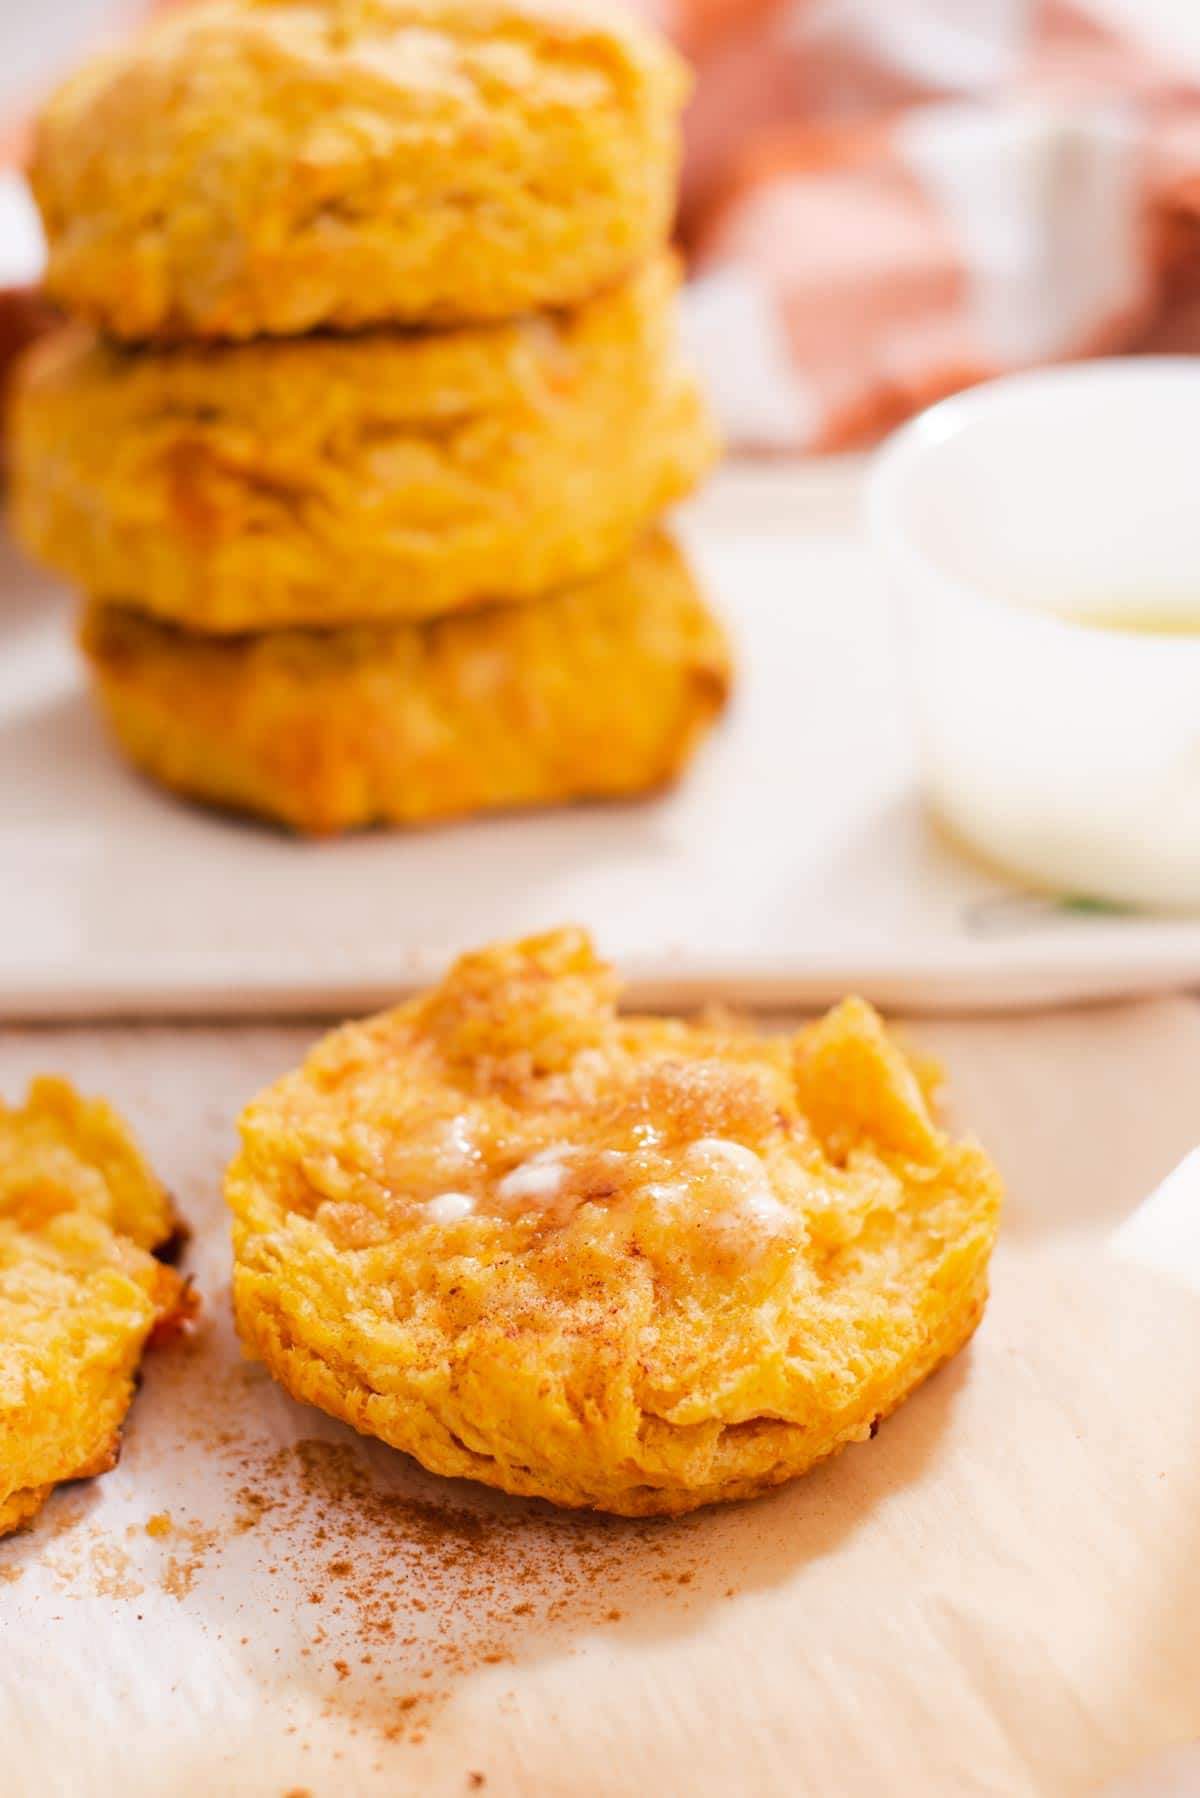 Half of a sweet potato biscuit topped with melted butter with more biscuits in the background